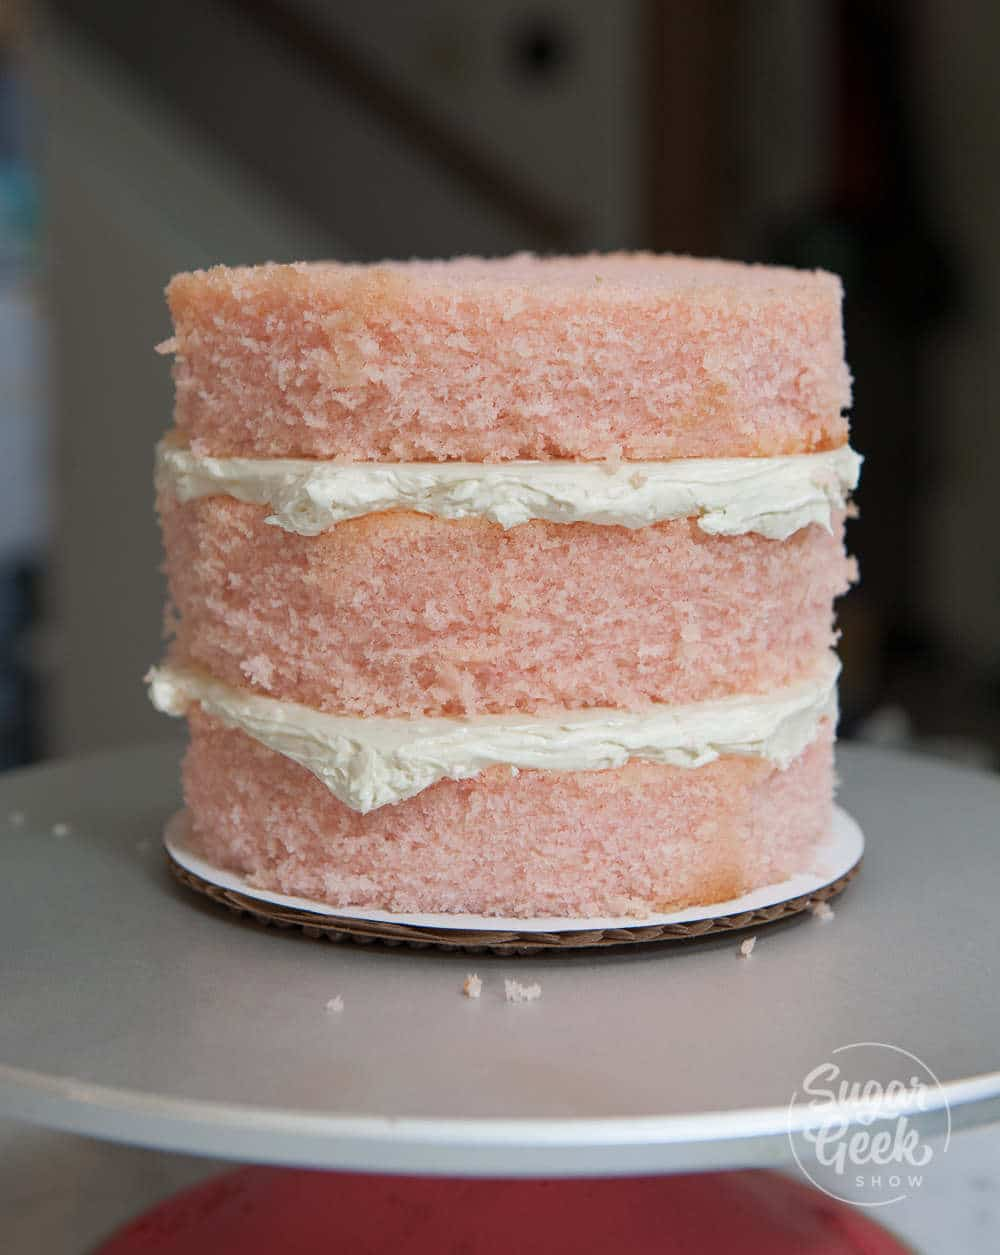 three layers of pink velvet cake with whipped cream in between the layers